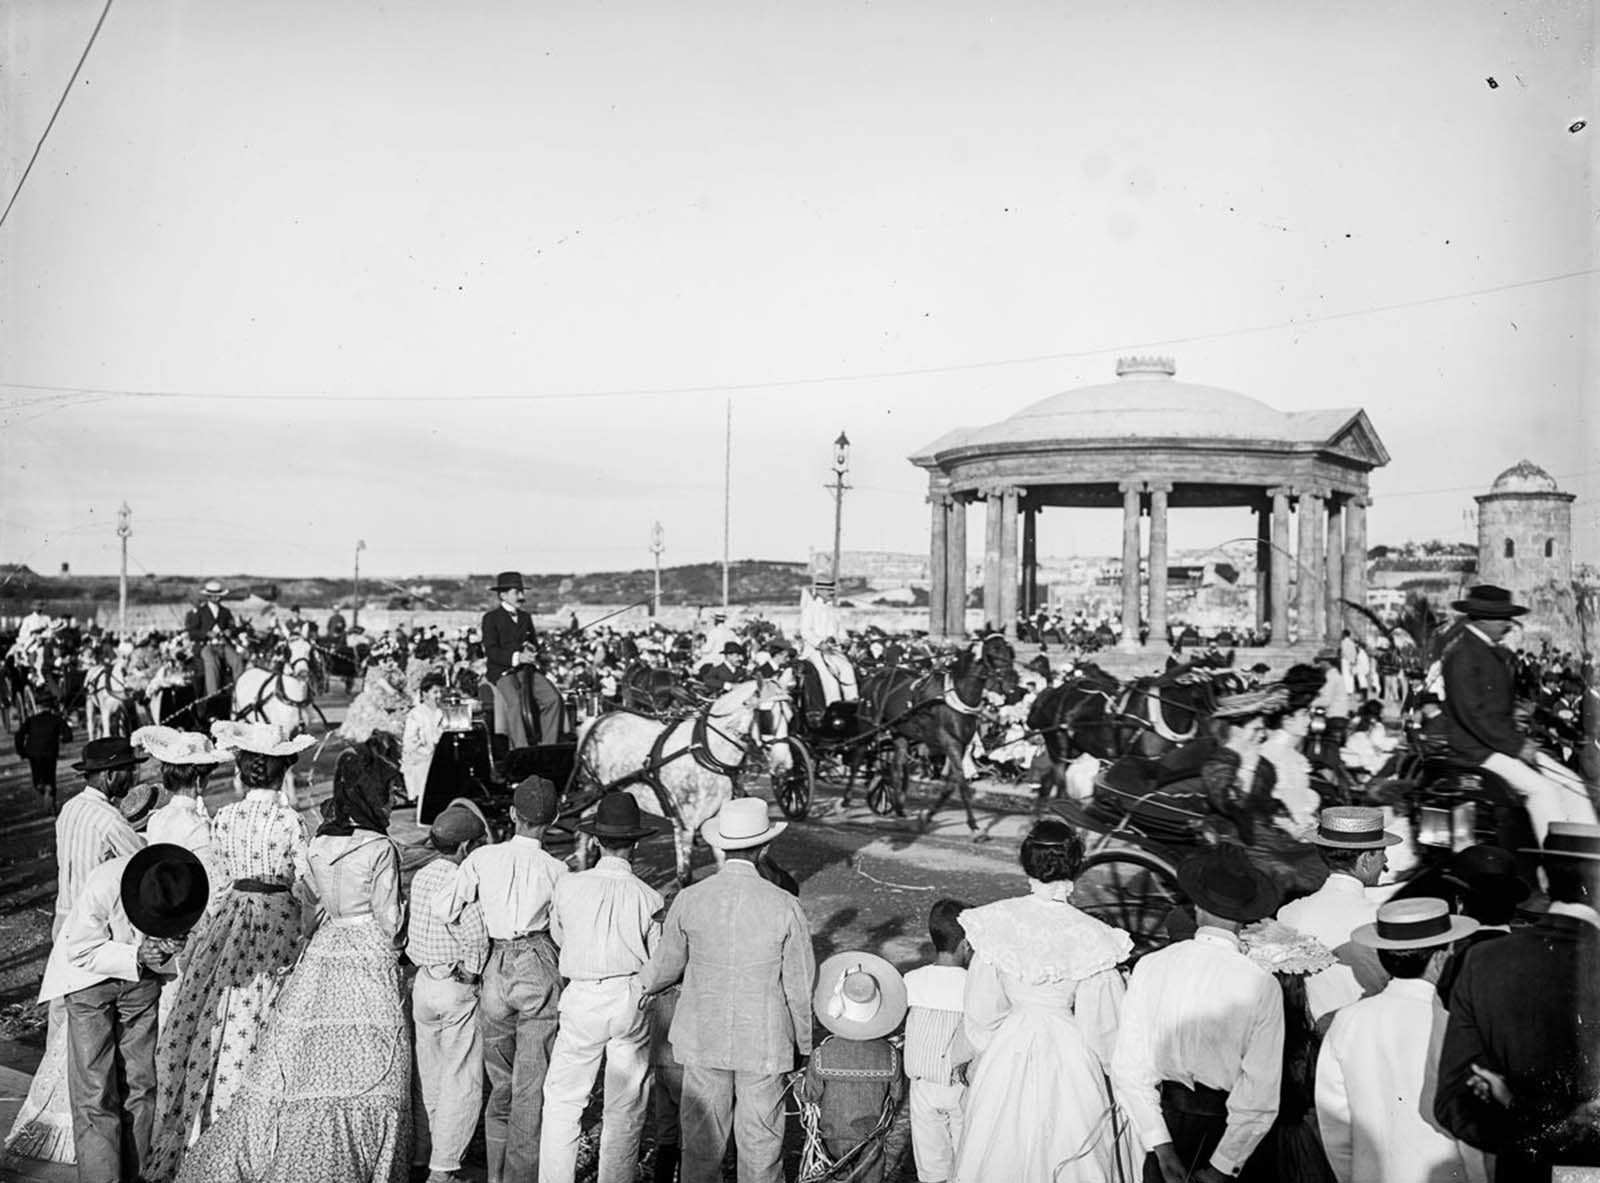 Crowds on the Malecón. 1890.